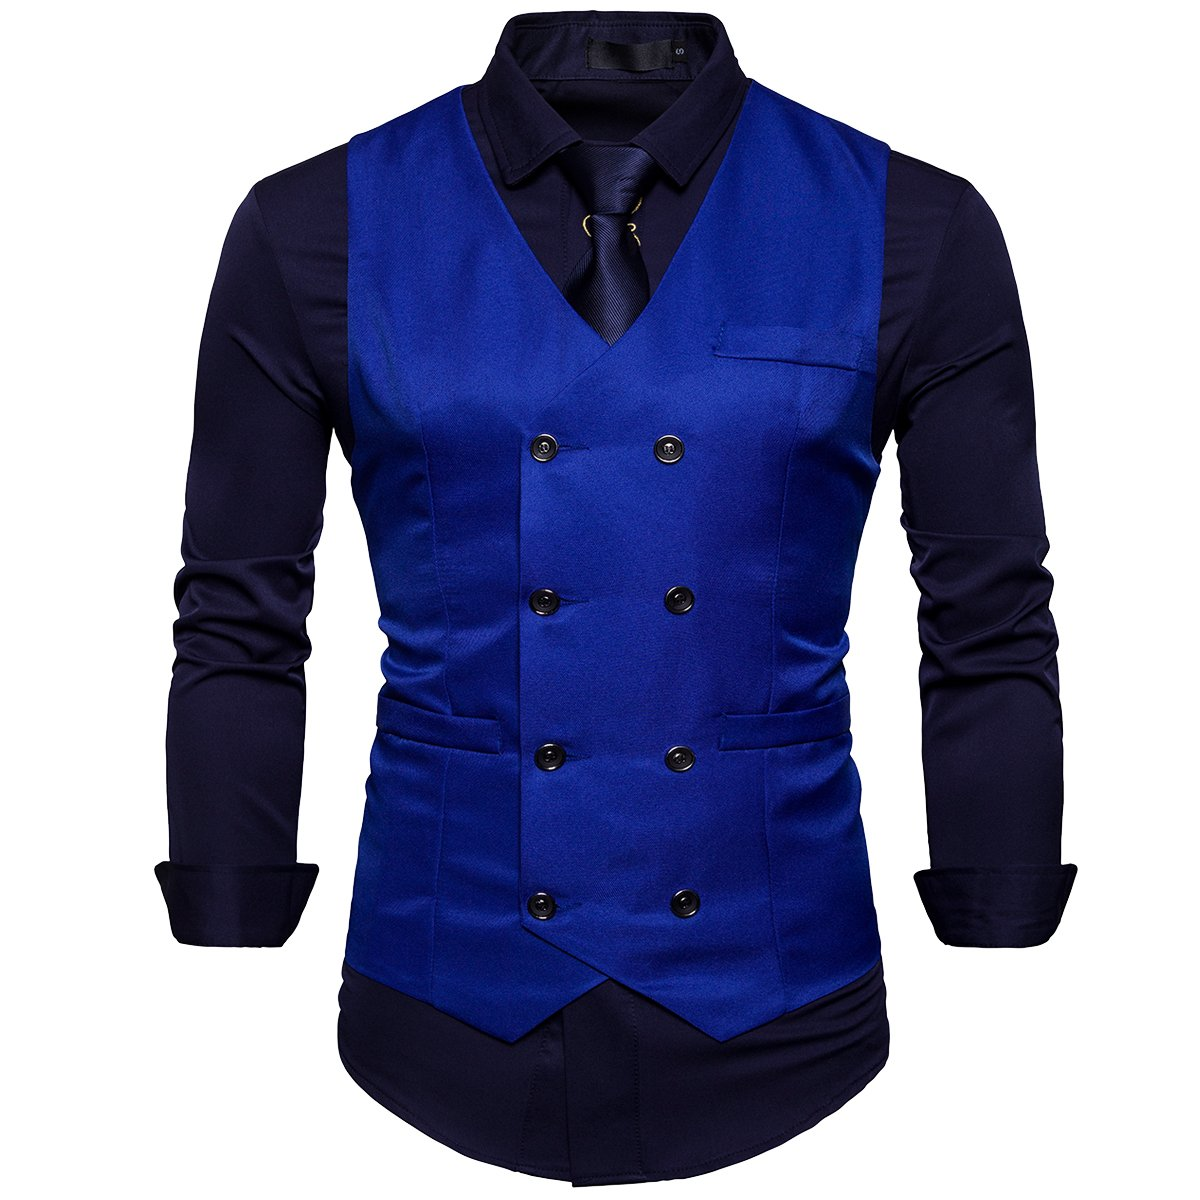 Cottory Men's Classic Double Breasted Slim Fit Waistcoat Vest Dress